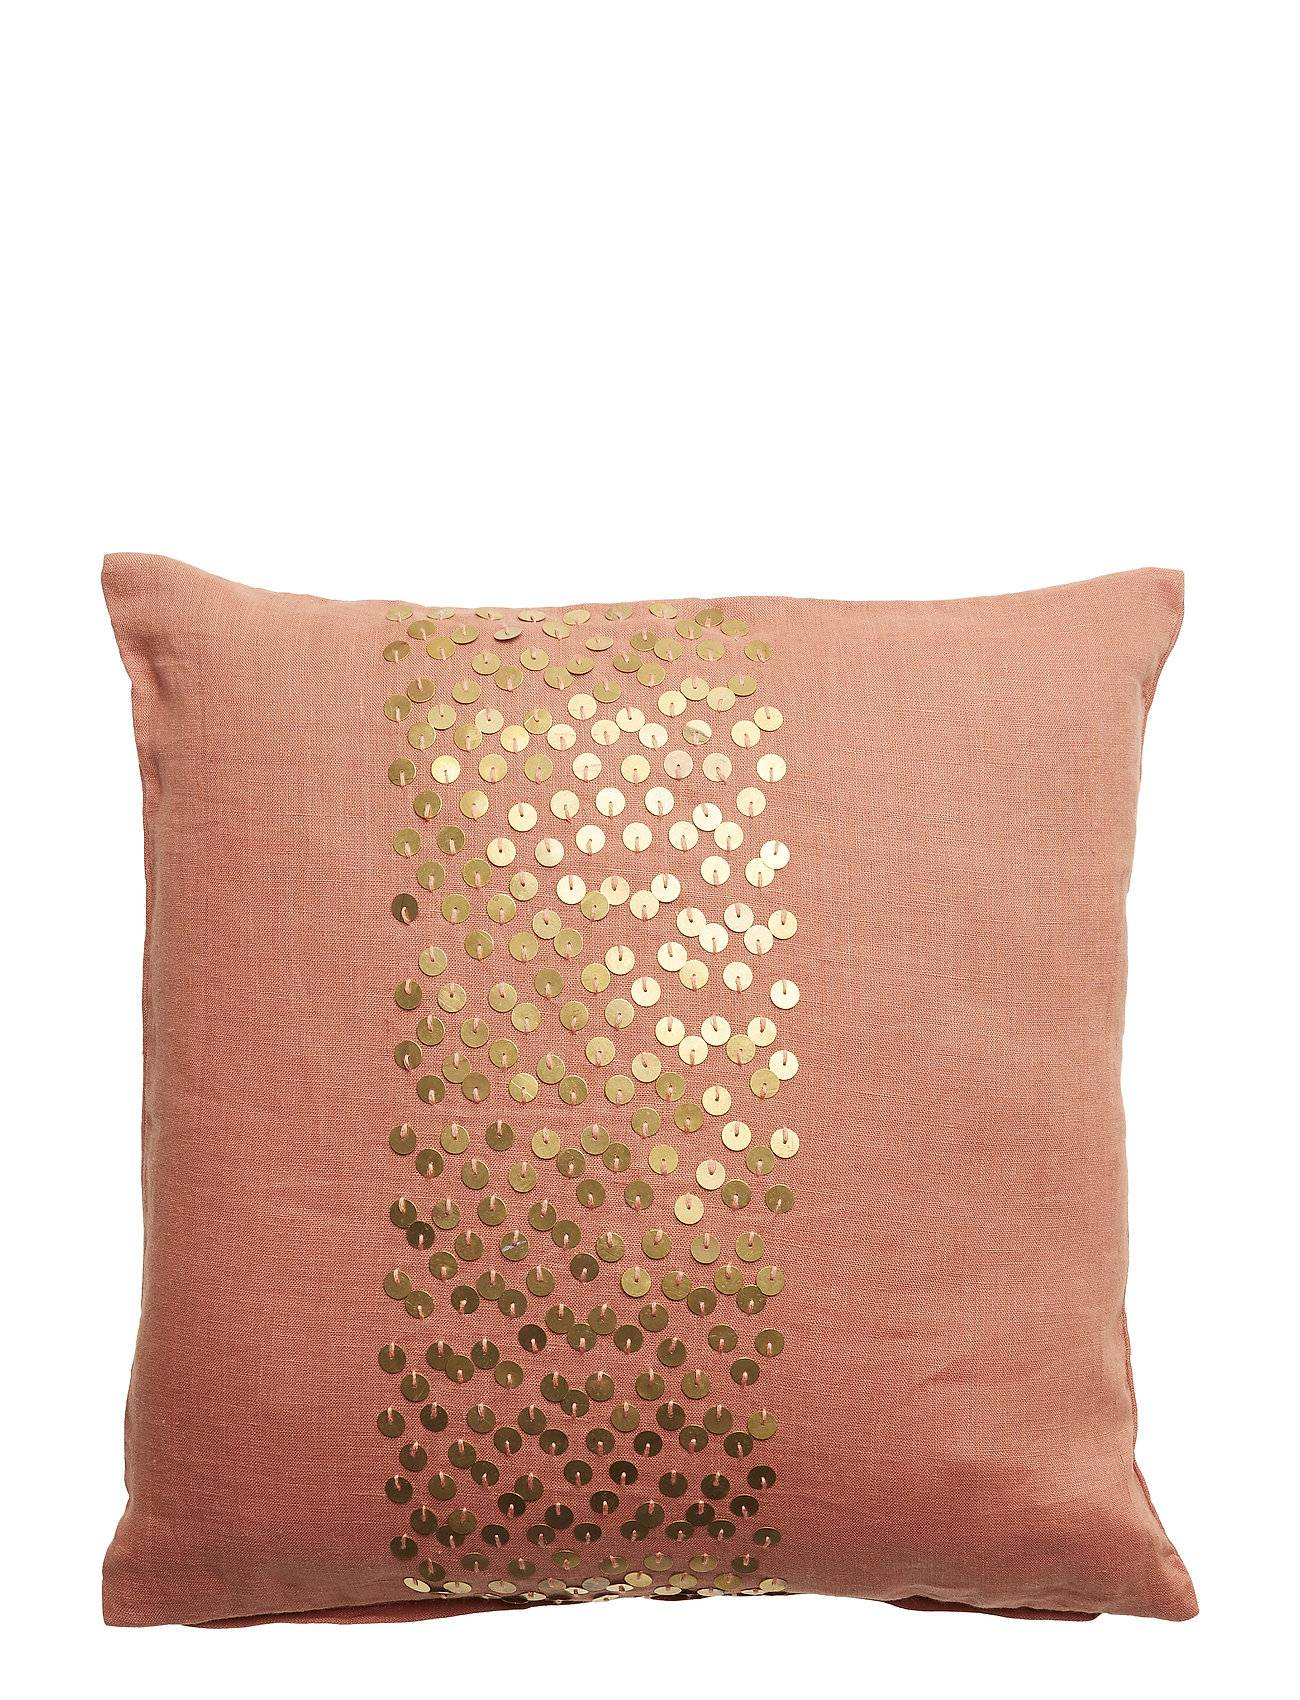 DAY Home Day Maroc Cushion Cover Pussilakana Vaaleanpunainen DAY Home